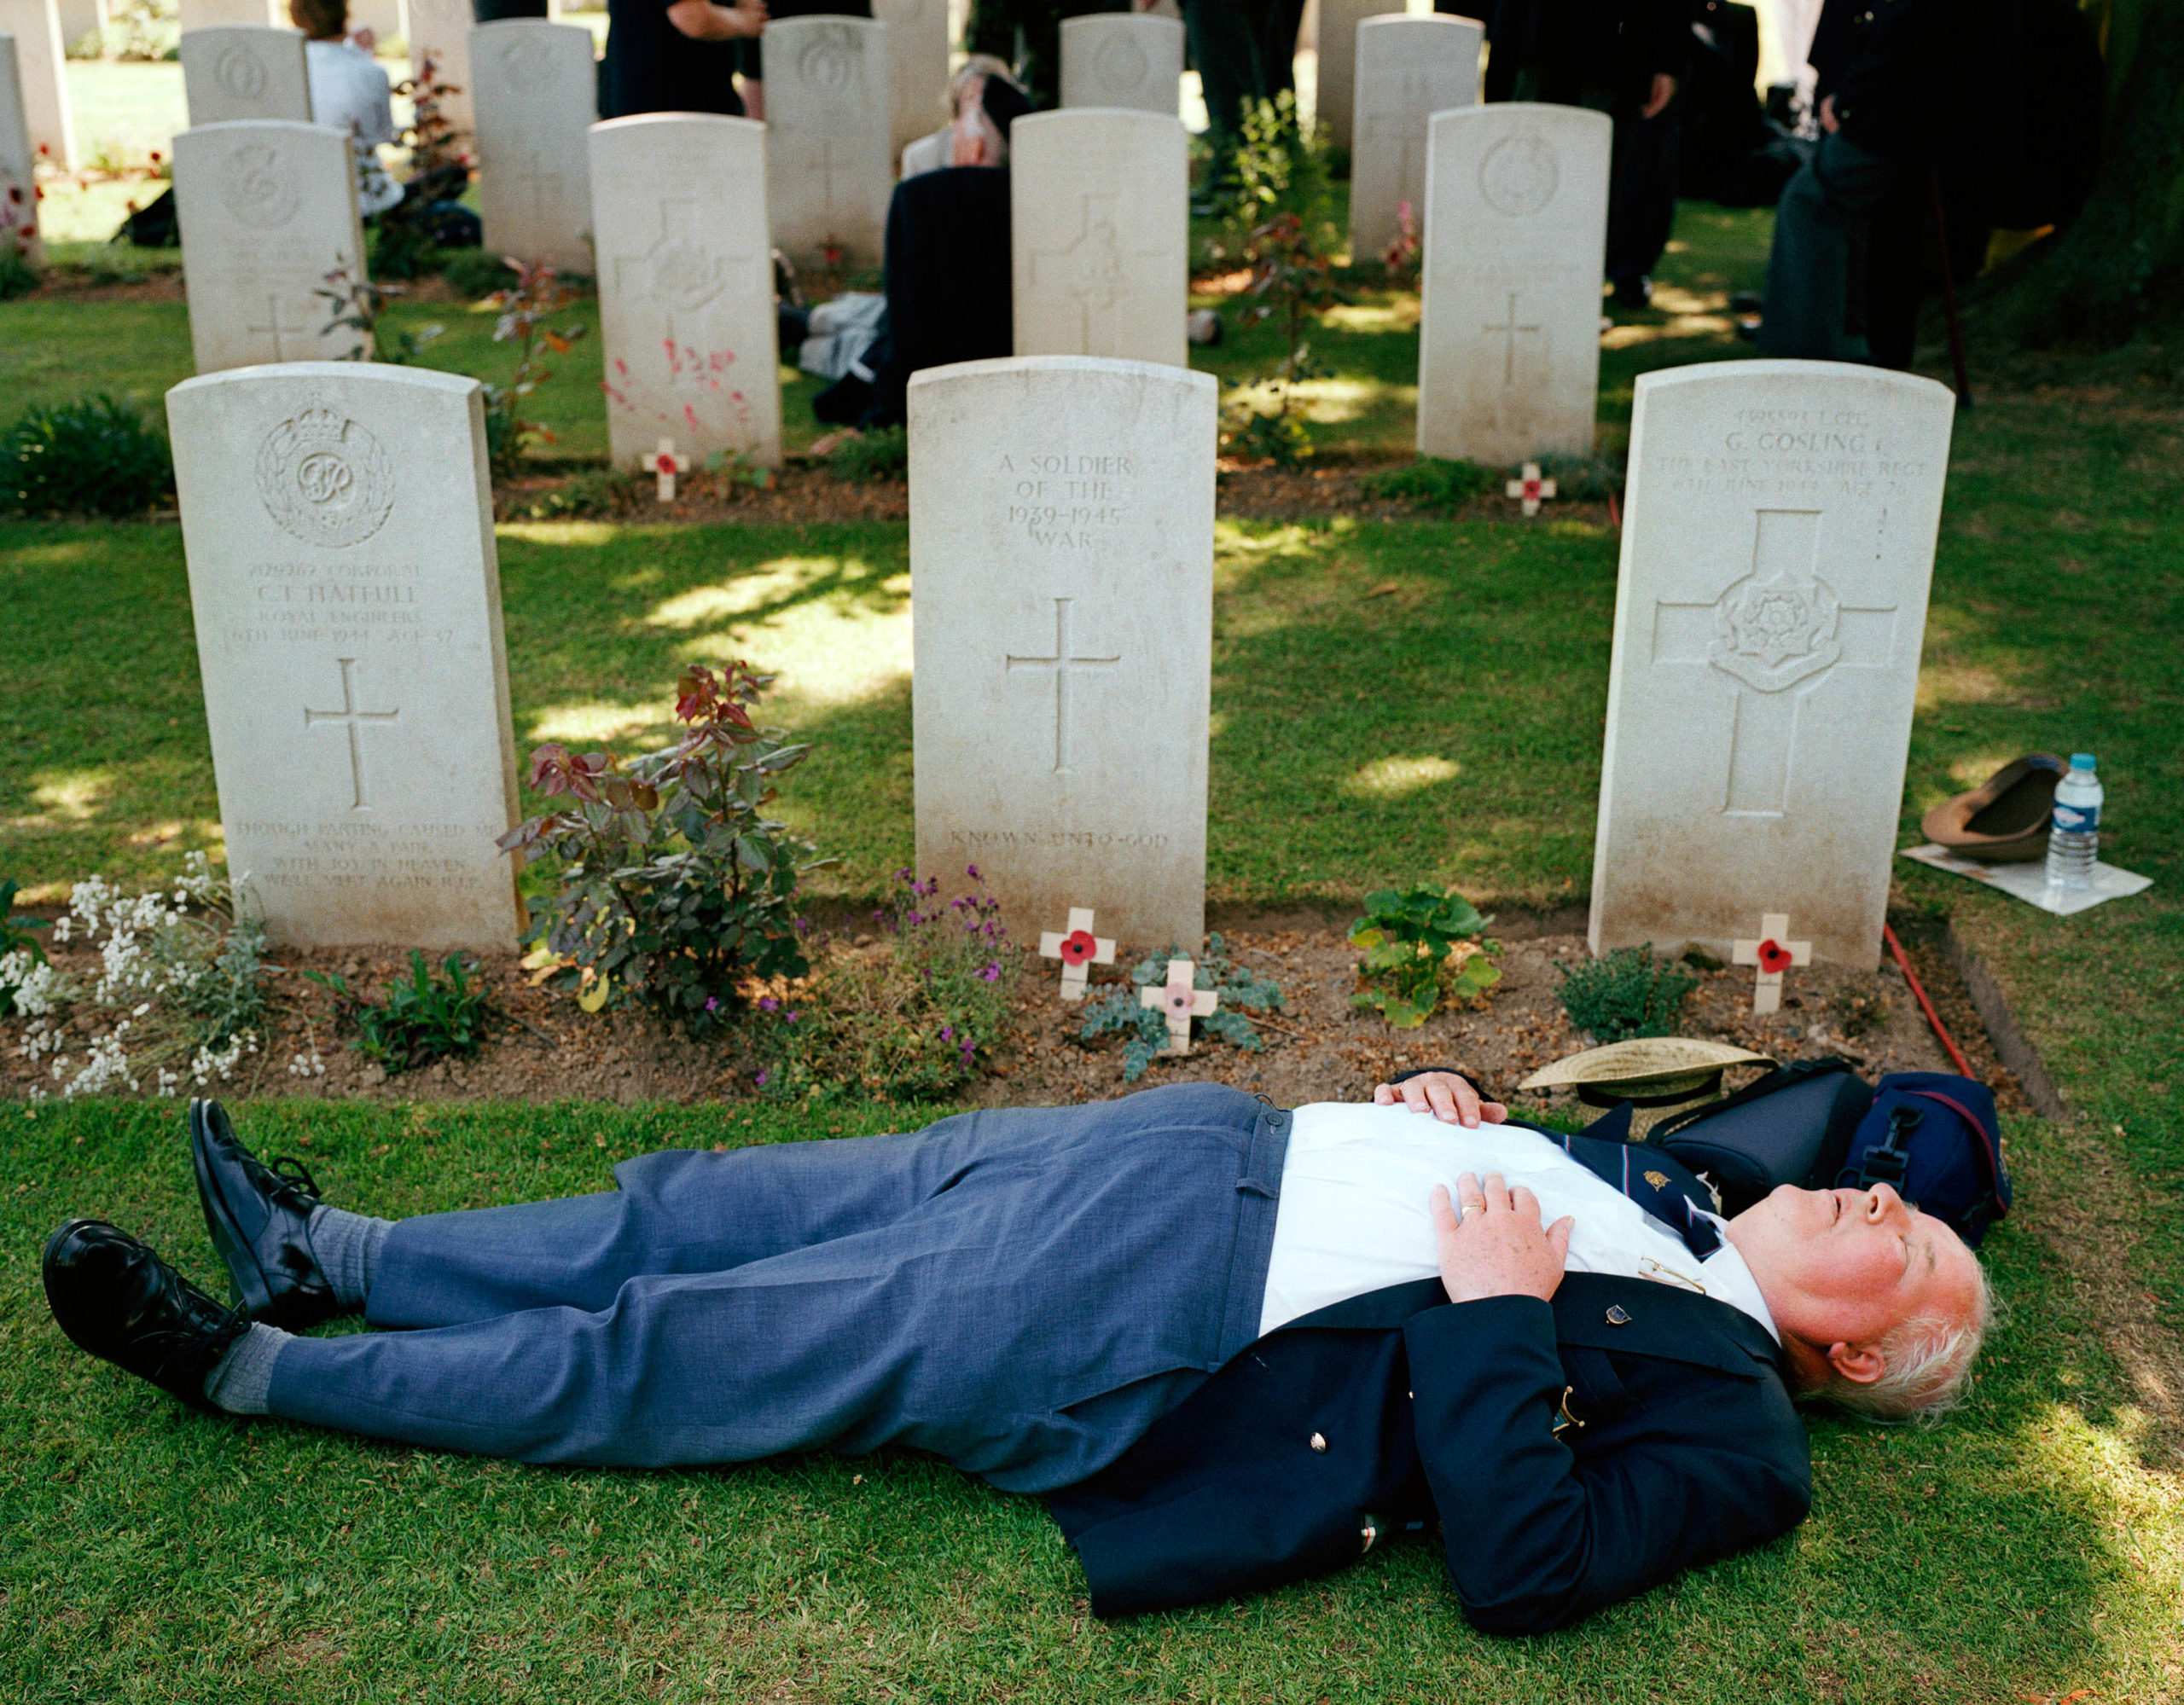 Normandy, Bayeux. D-Day celebrations. British veteran after the remembrance ceremony.